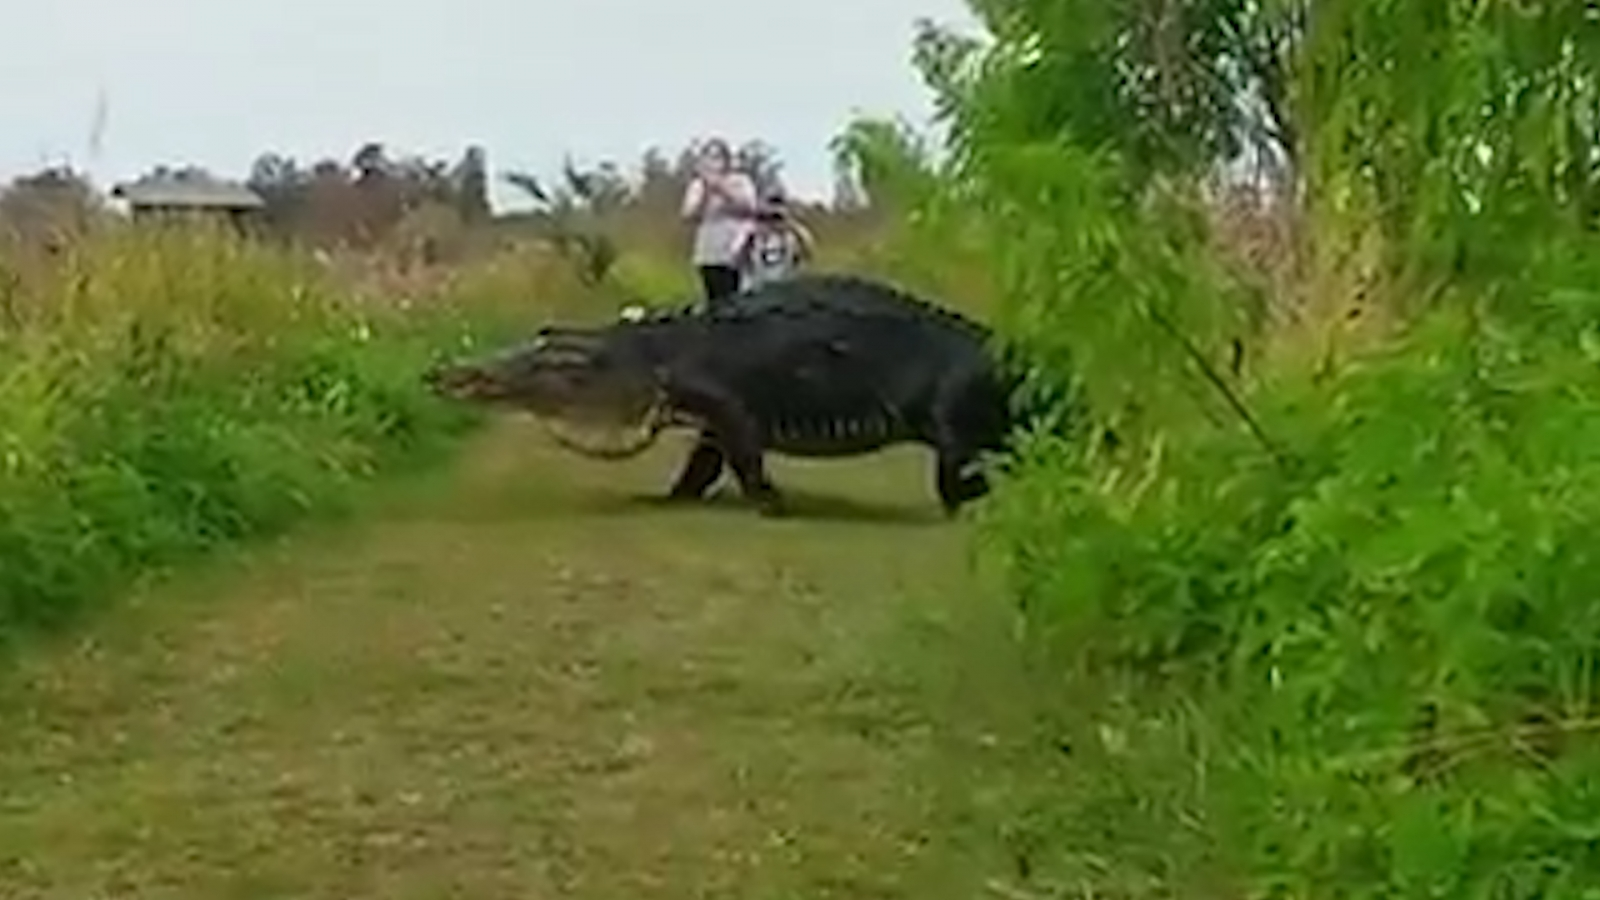 Giant alligator crosses path of tourist